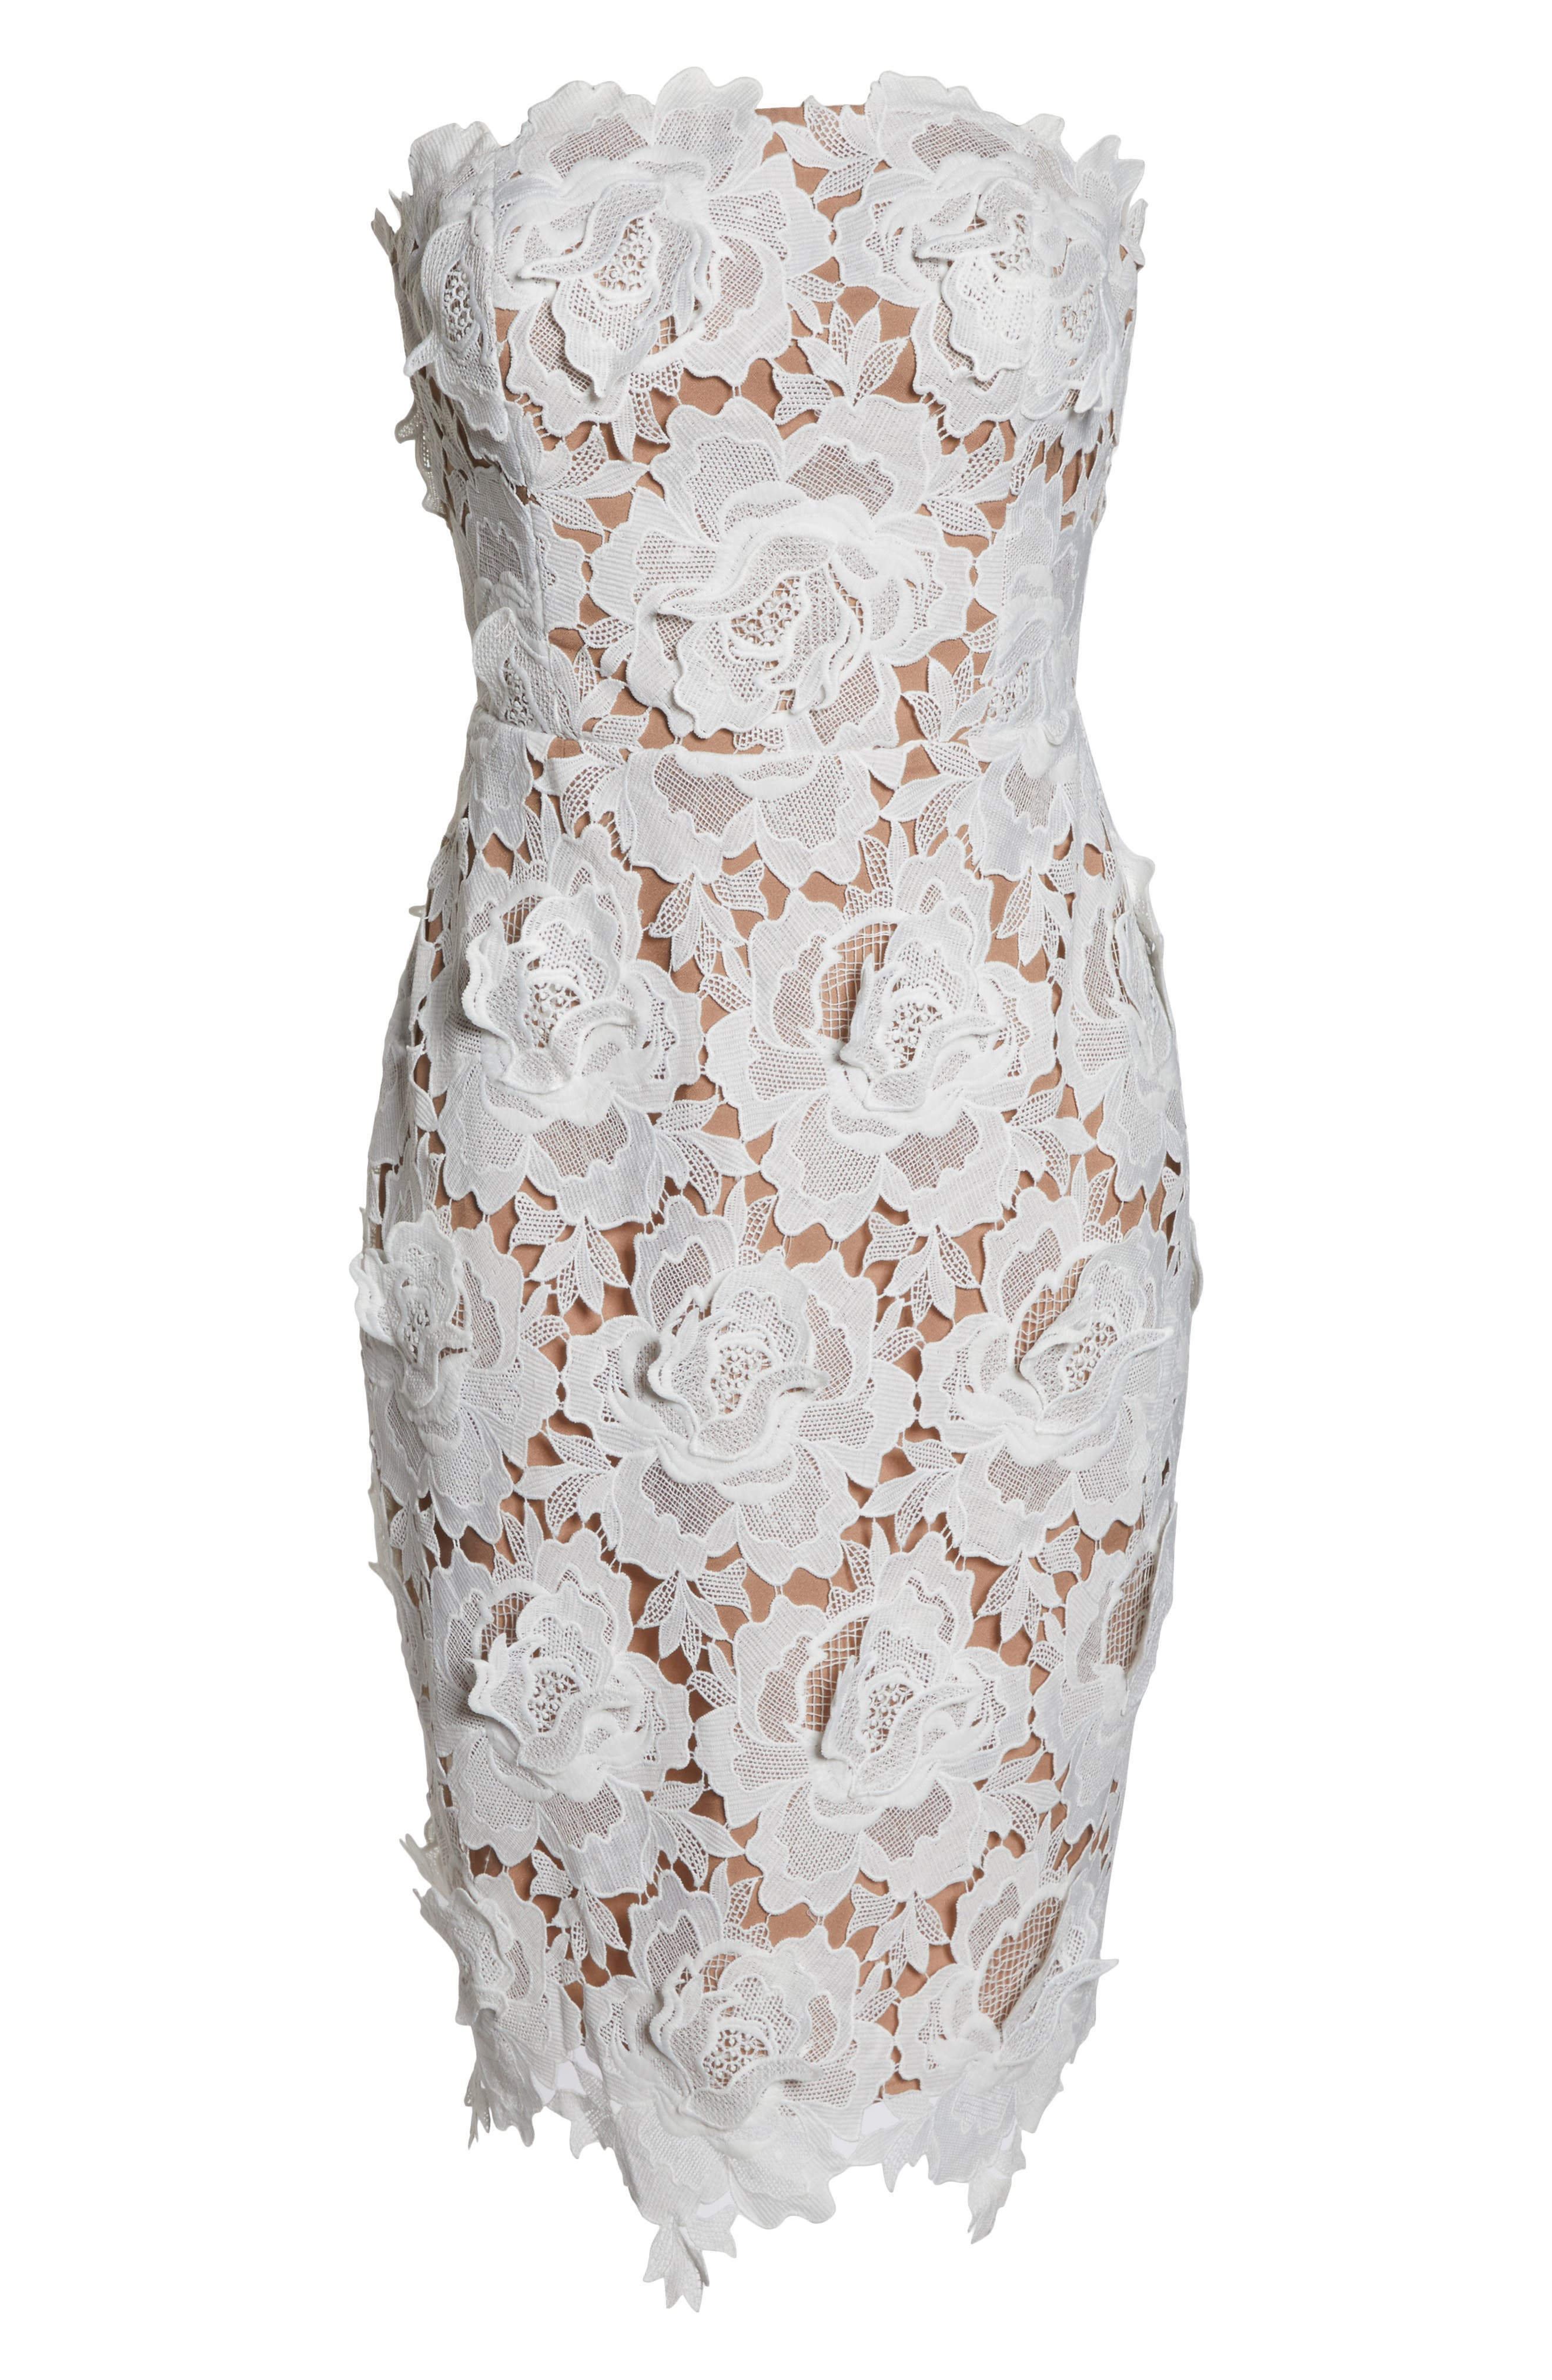 Jade Strapless Lace Dress,                             Alternate thumbnail 7, color,                             WHITE-NUDE